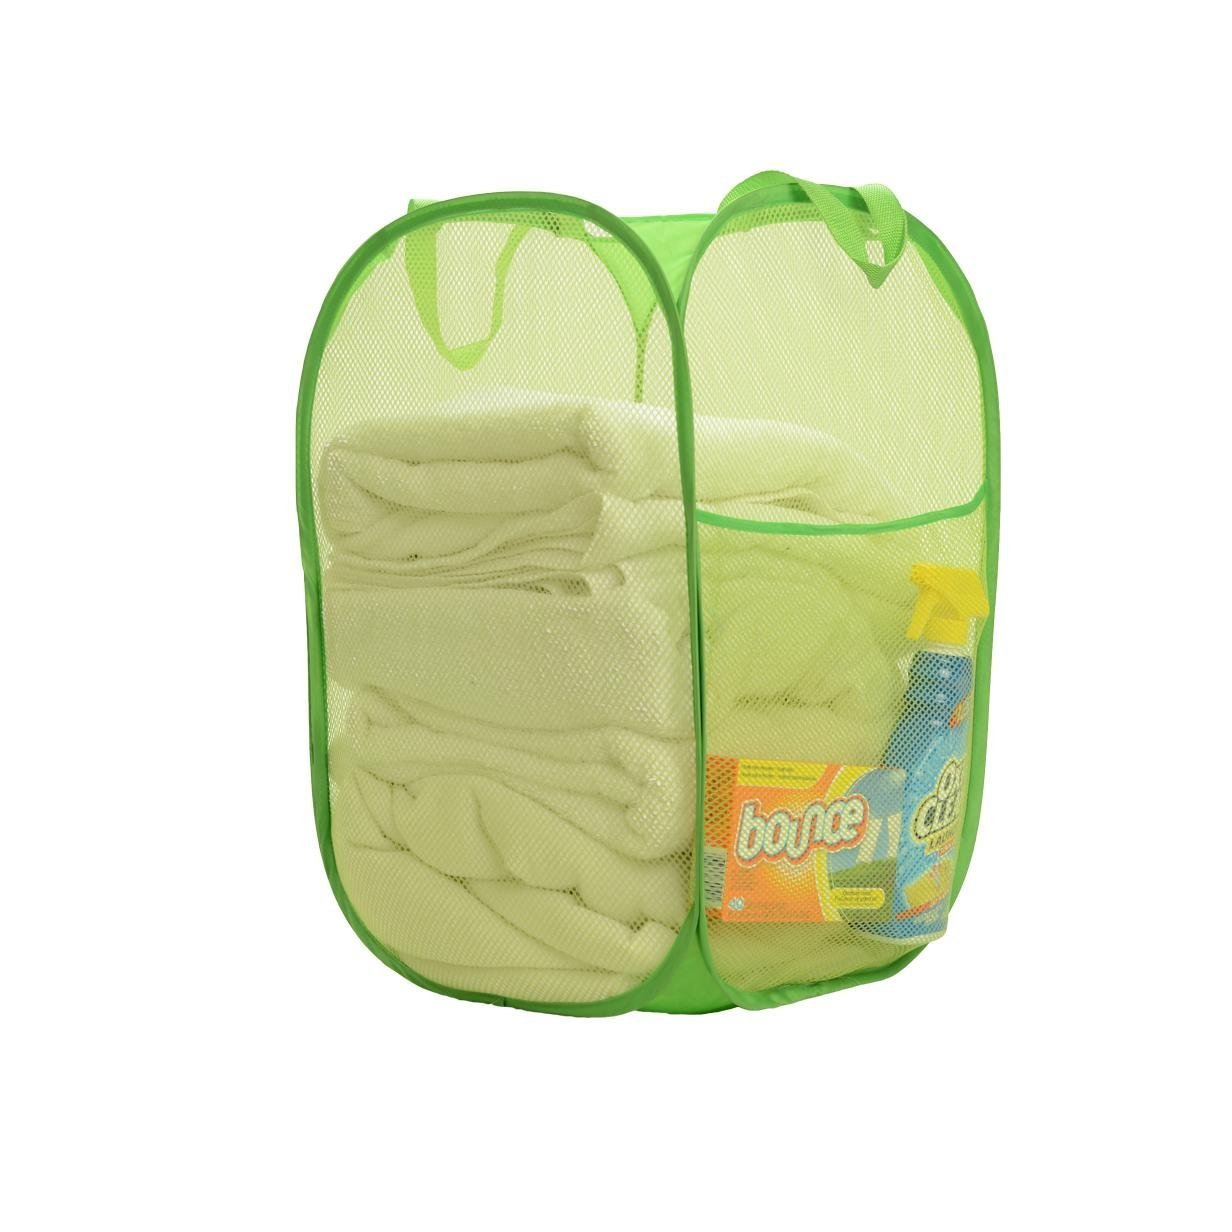 Folding Pop-up Portable Mesh Laundry Hamper With Handle, Space Saver, High Capacity, Heavy Duty, Slim and Super Lightweight Green